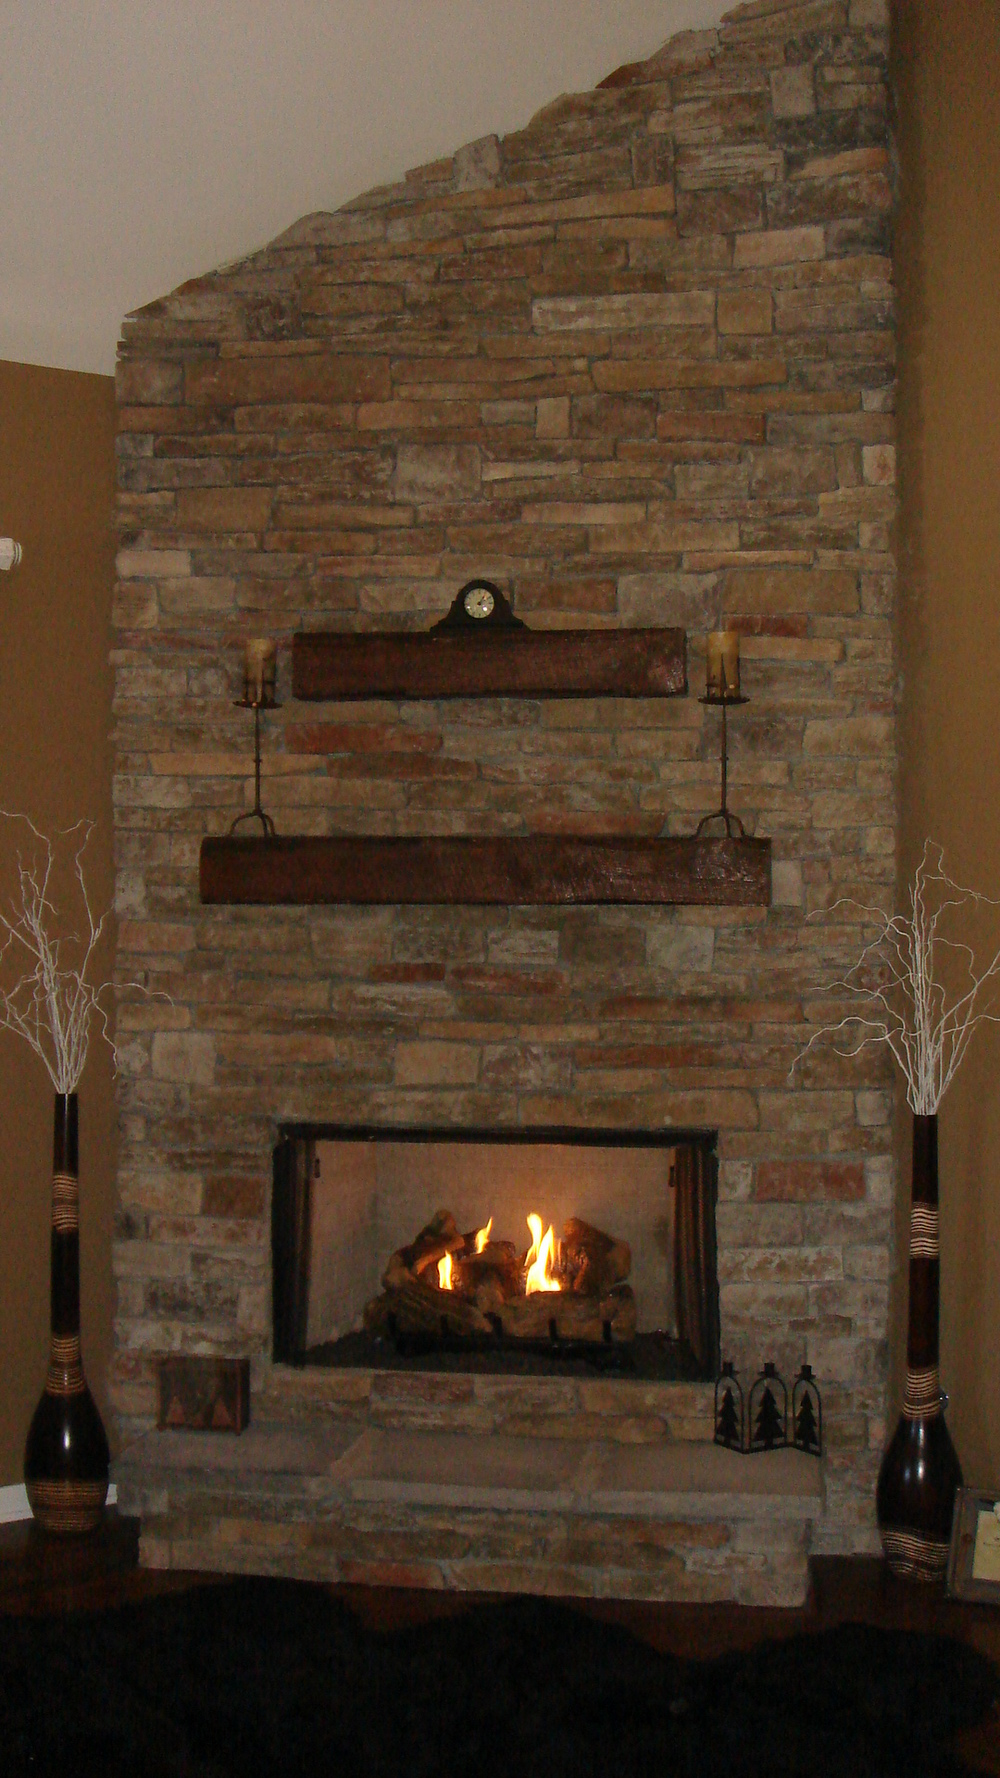 20 Andrews fireplace.JPG